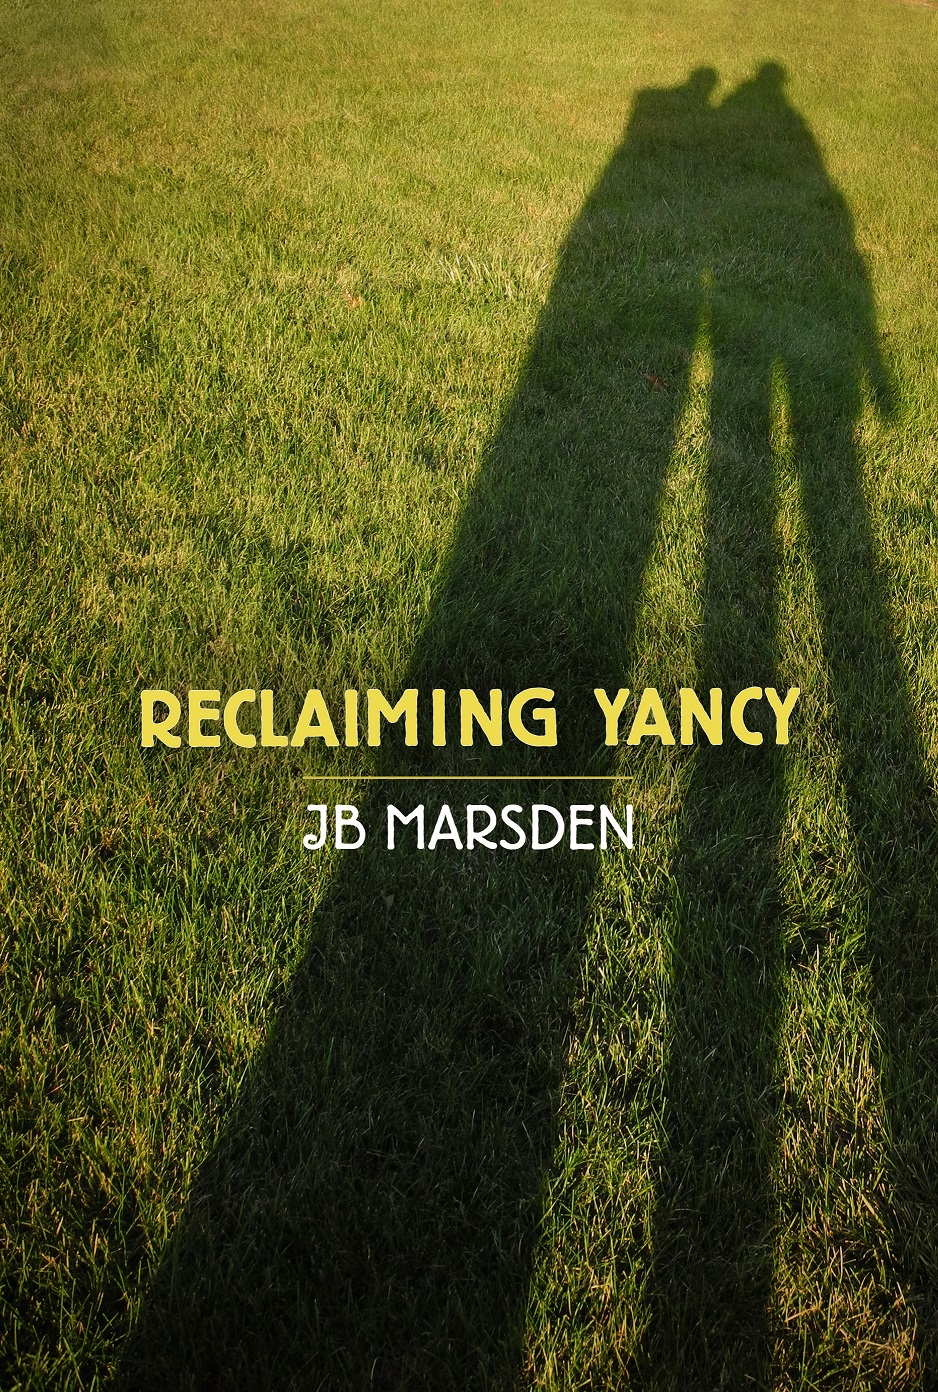 Buy Reclaiming Yancy here